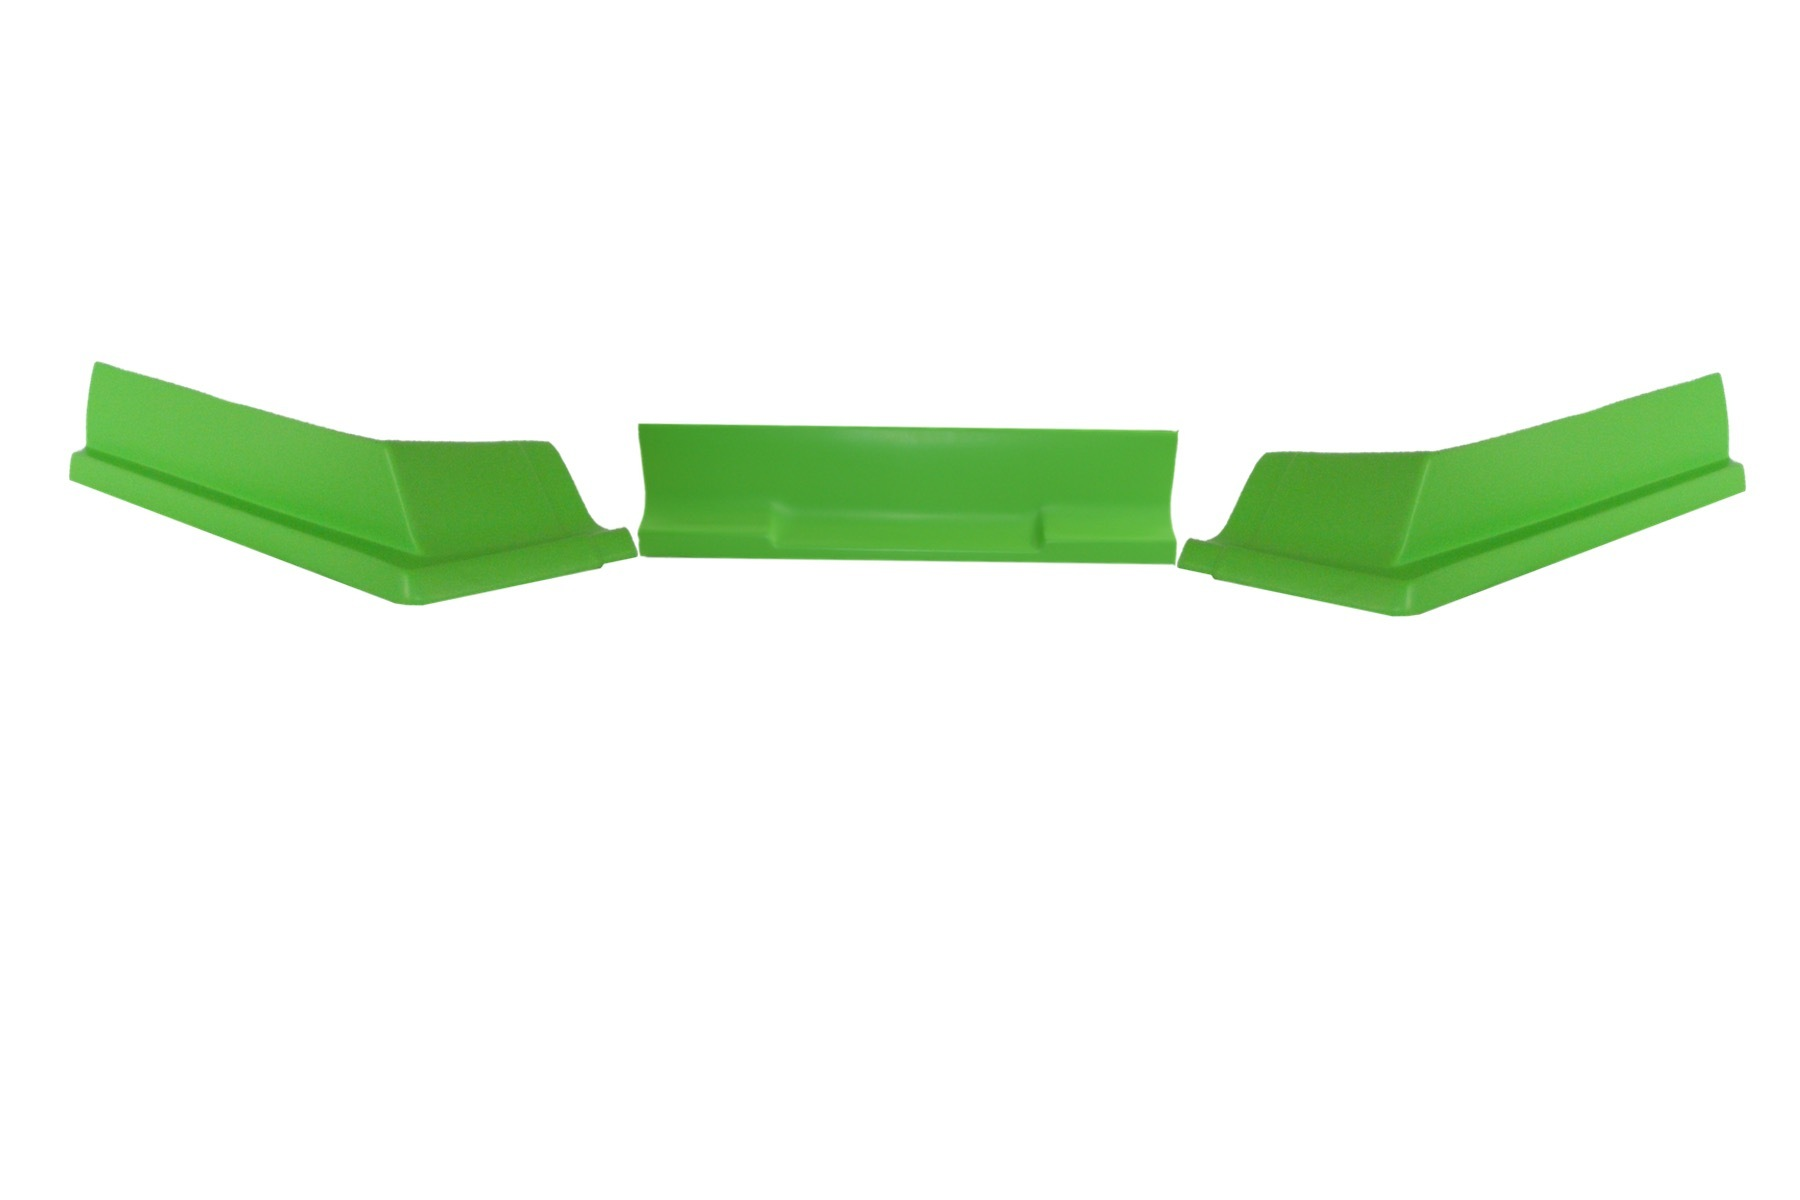 Dominator Racing Products 409-XG Air Valance, 3 Piece, Molded Plastic, Xtreme Green, Dirt Modified, Each